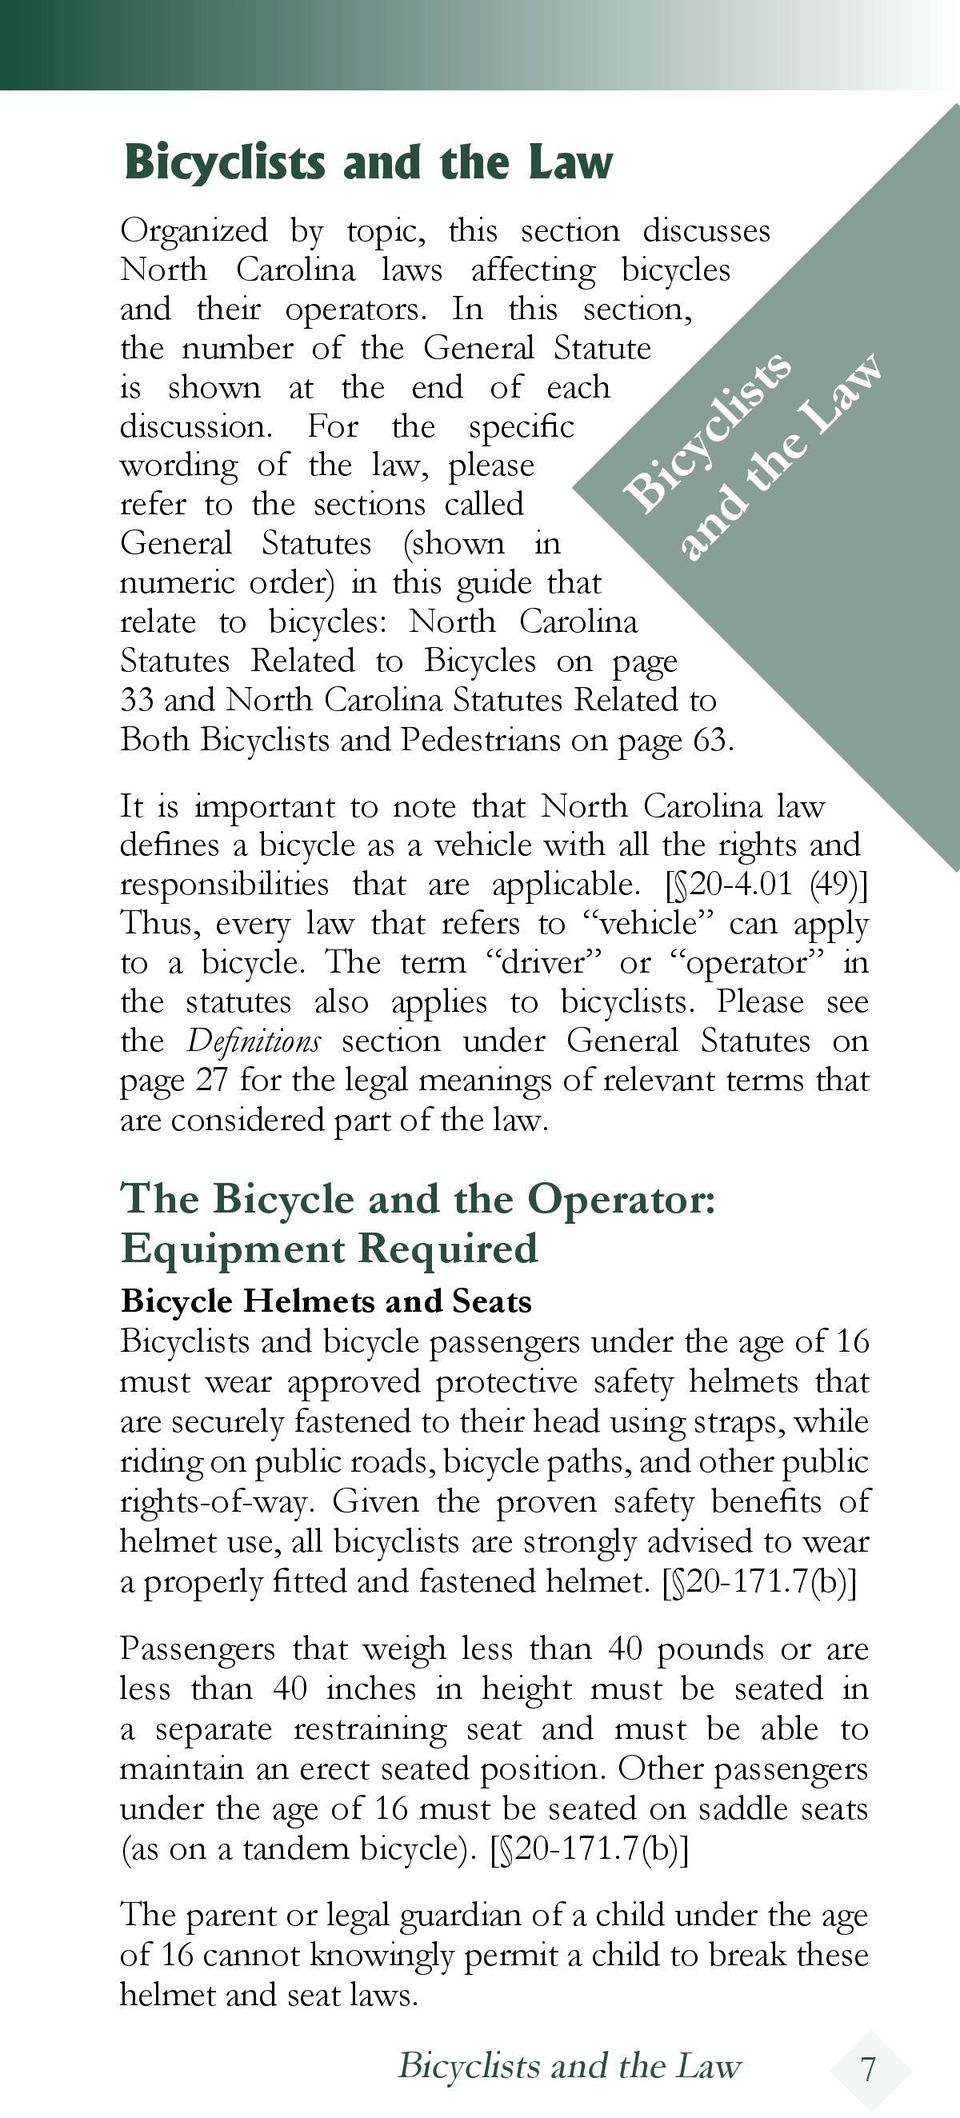 For the specific wording of the law, please refer to the sections called General Statutes (shown in numeric order) in this guide that relate to bicycles: North Carolina Statutes Related to Bicycles